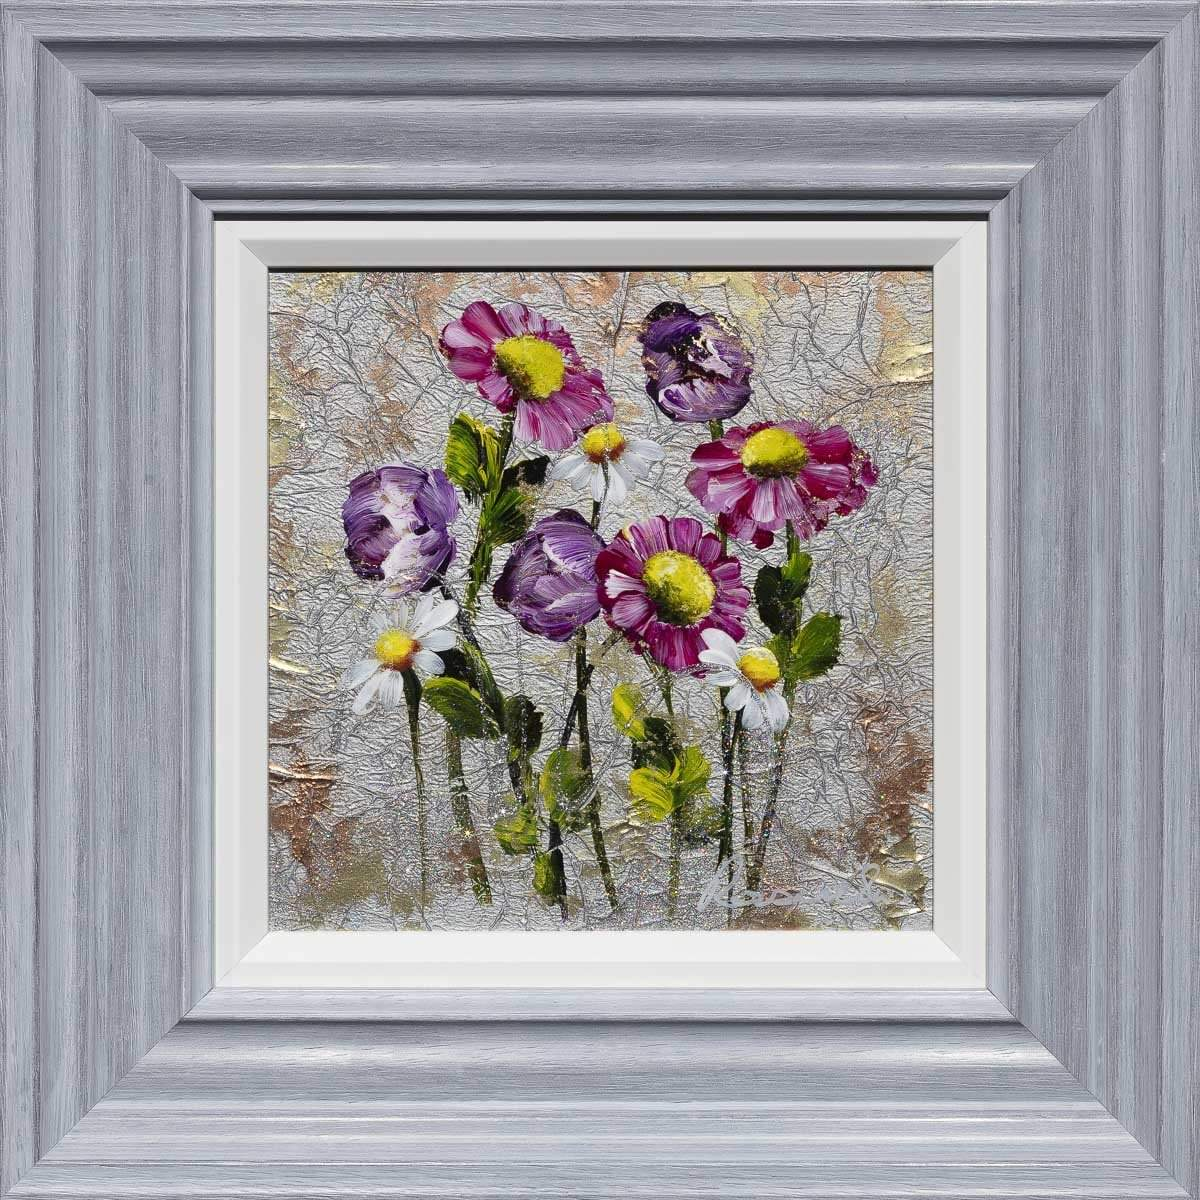 Dancing Daisies - Original Rozanne Bell Framed